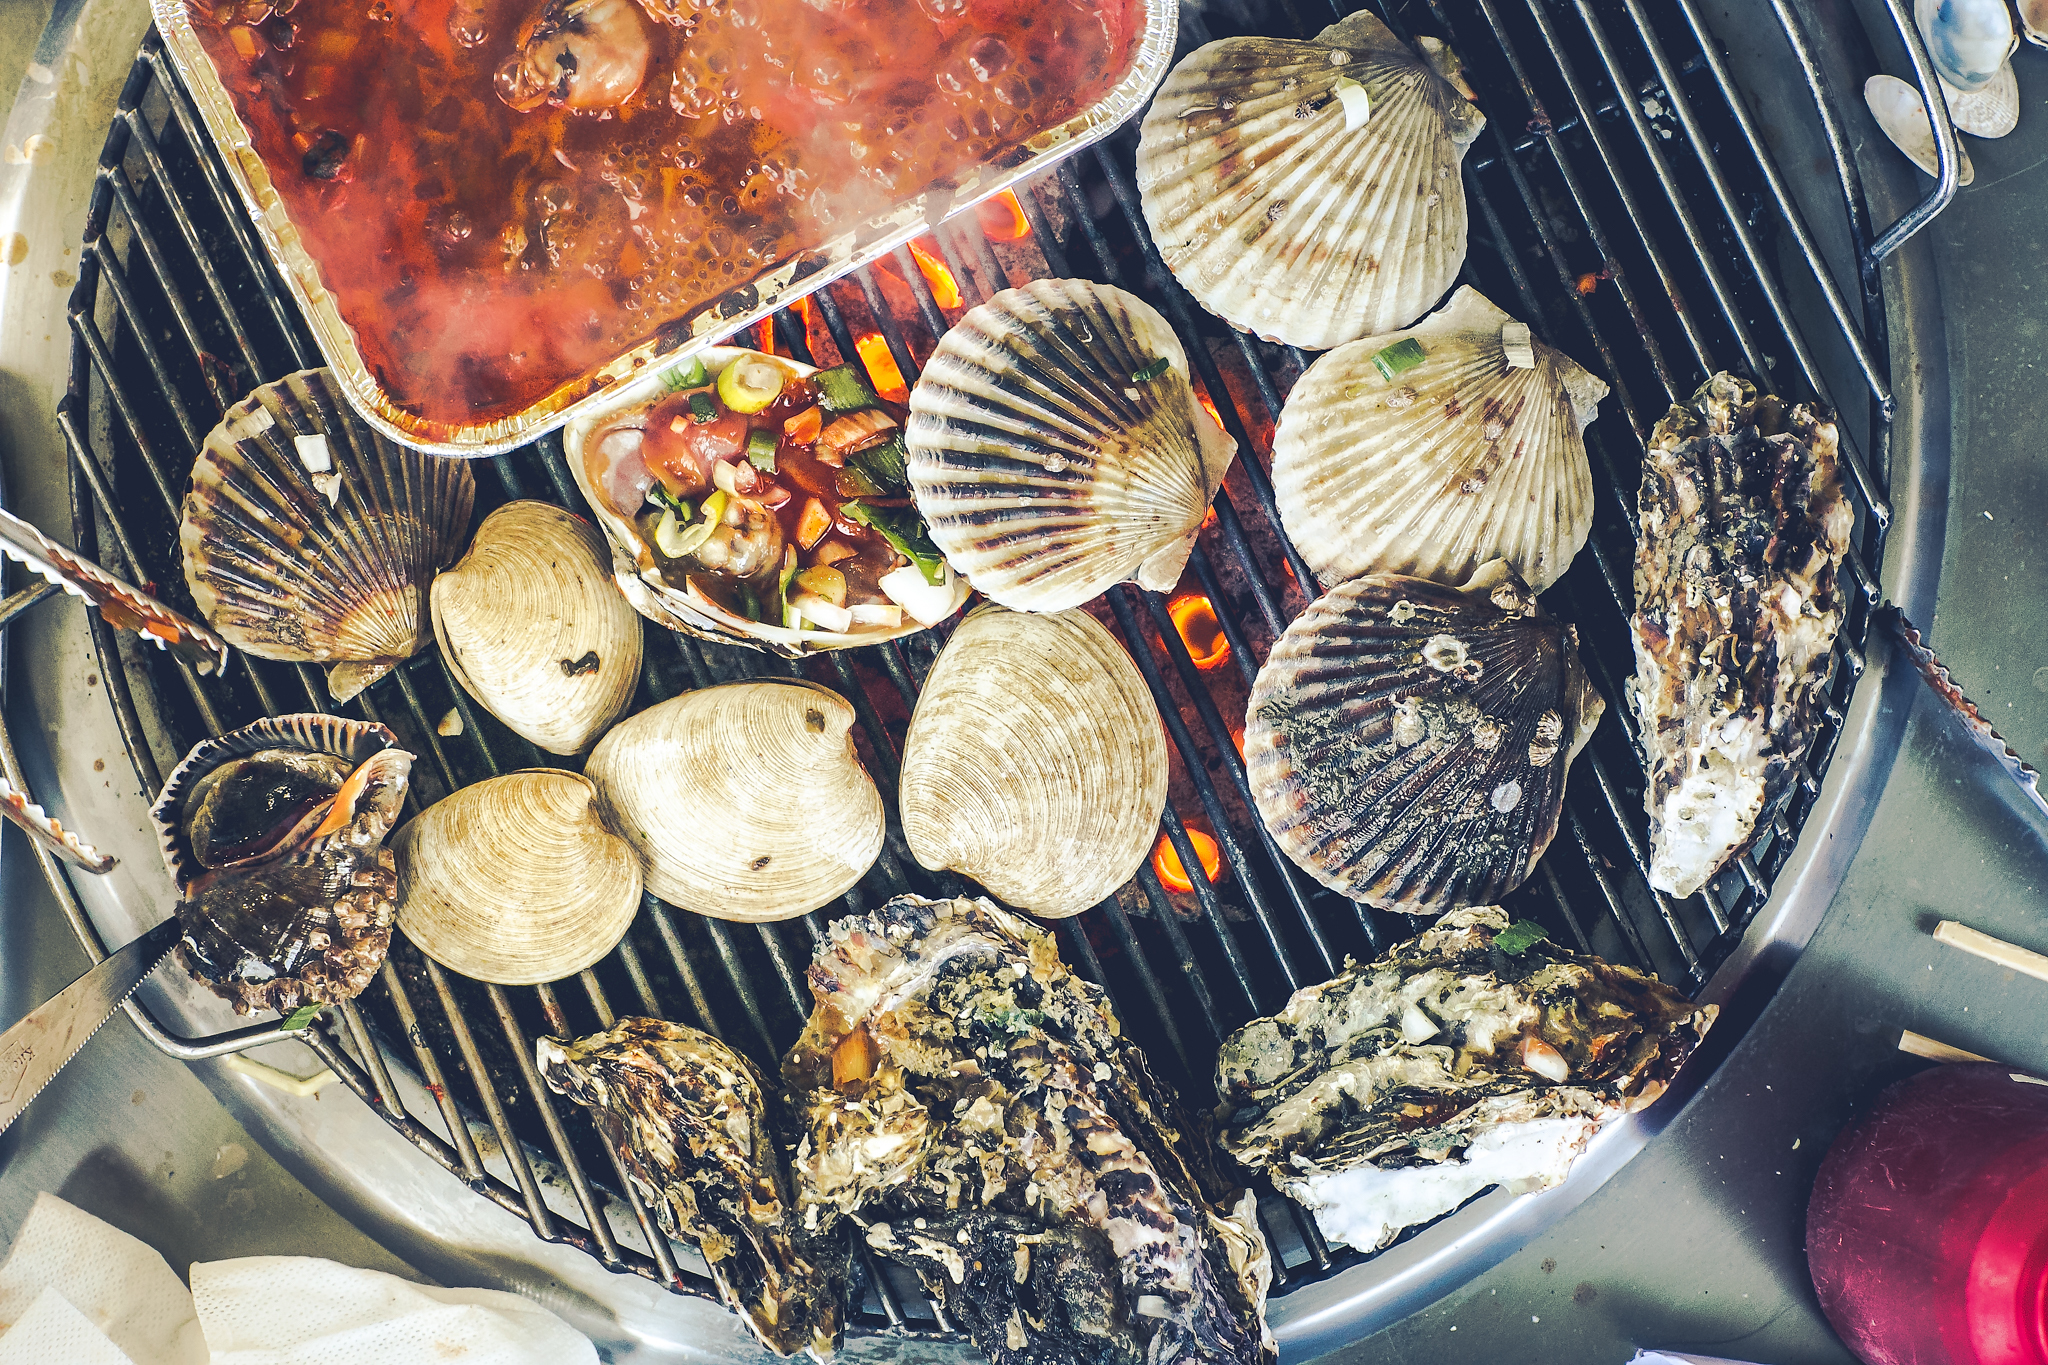 High Angle View Of Seafood Grilling On Barbeque